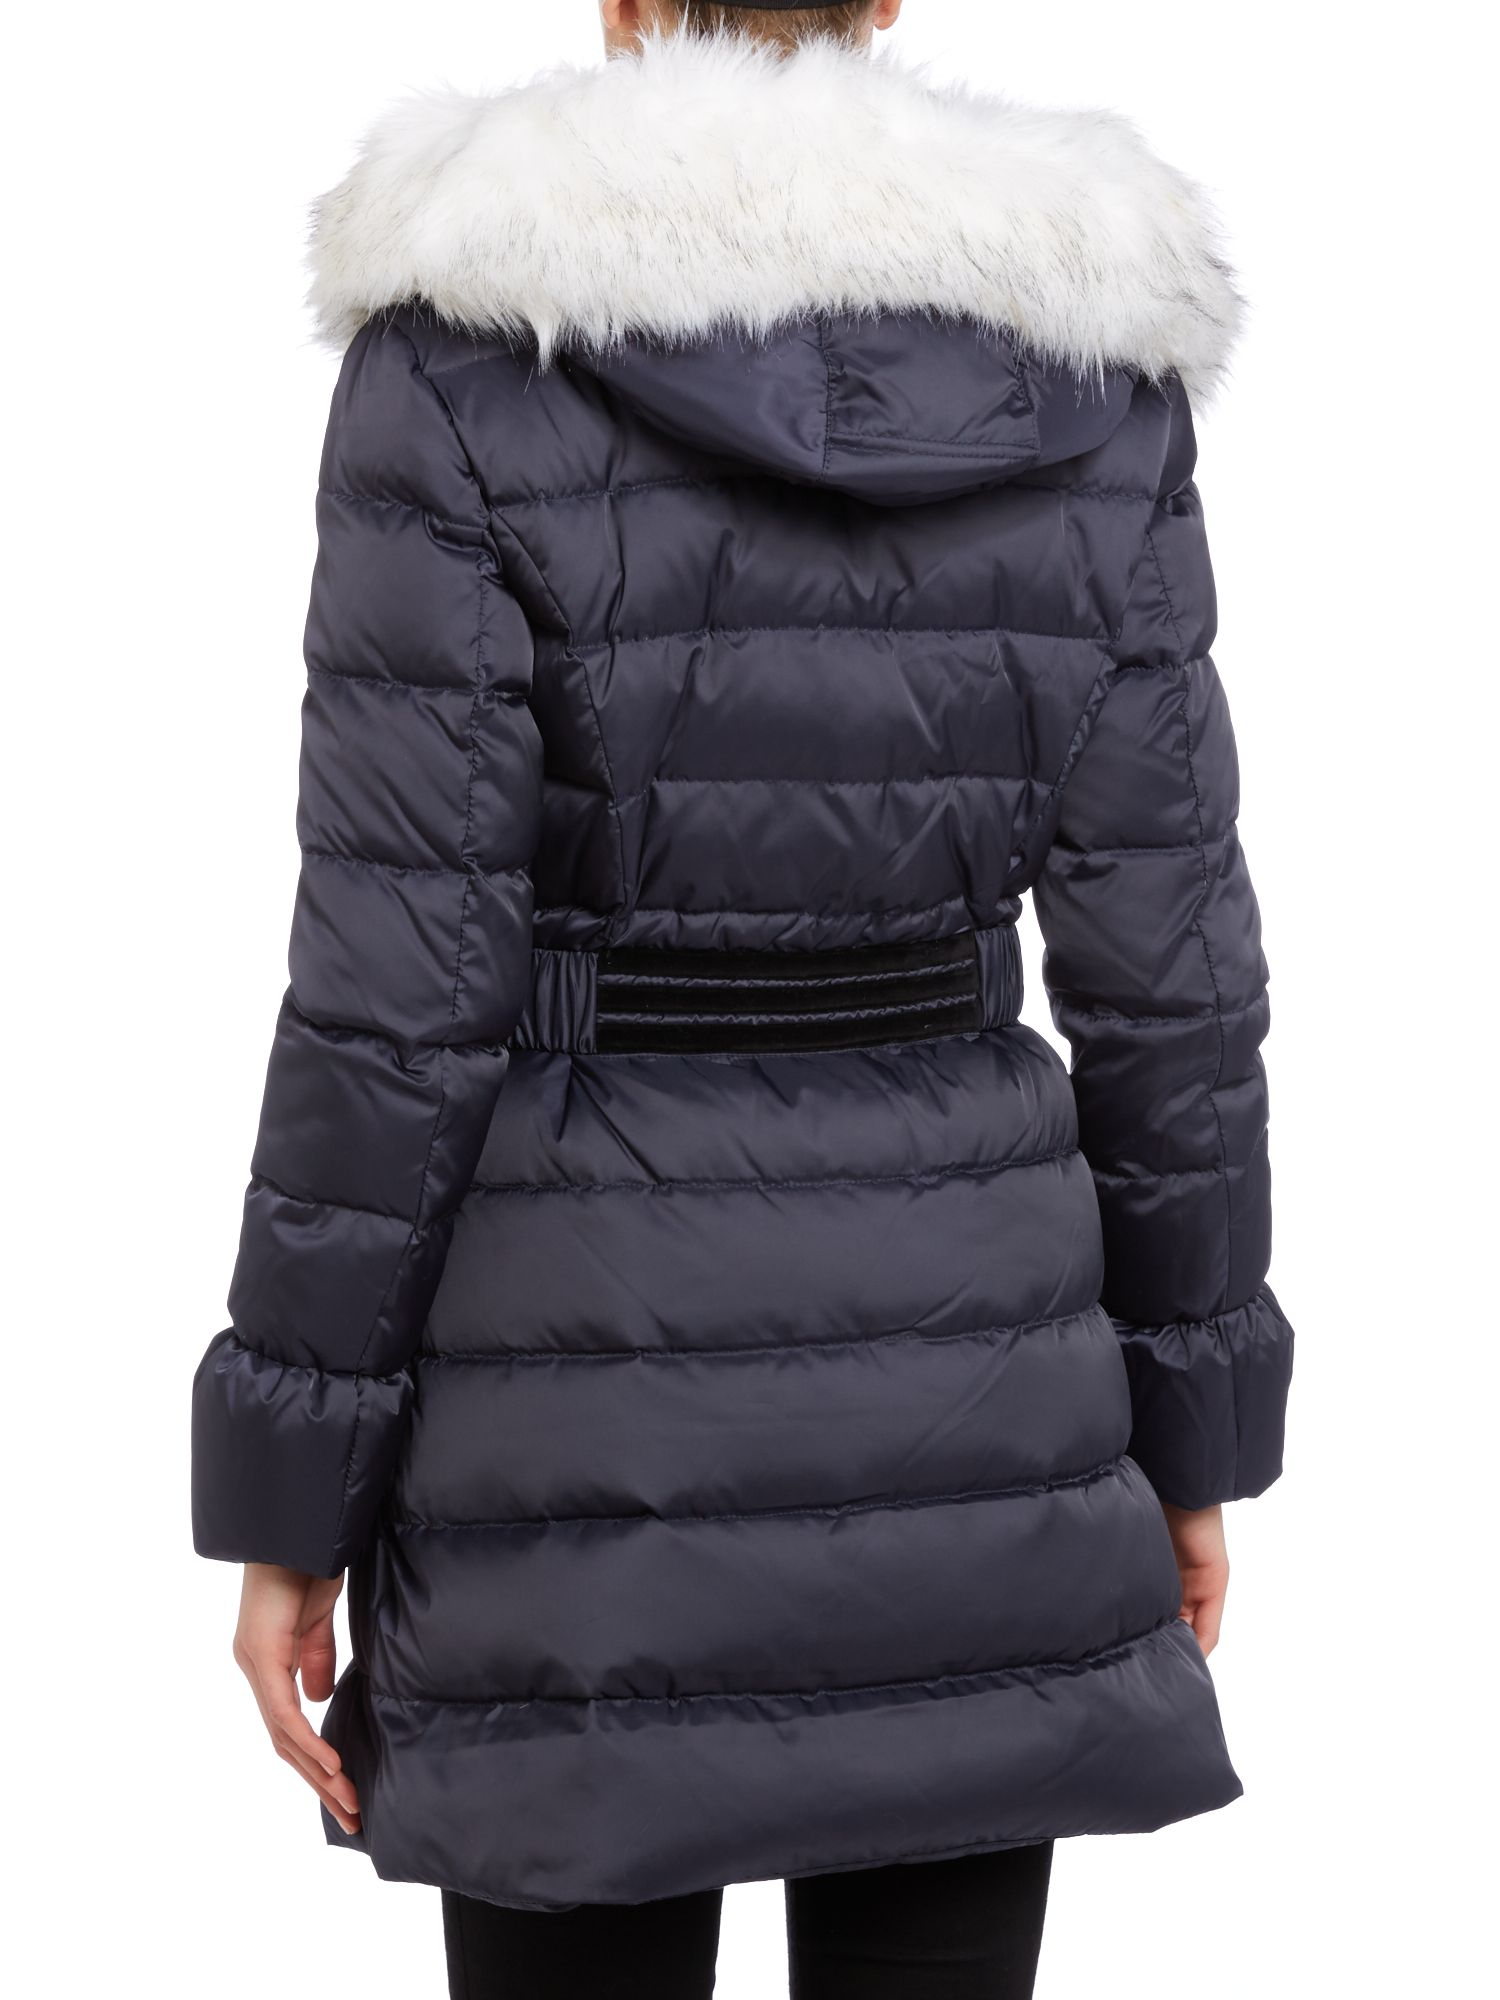 Dawn levy Black Down Ladies Jacket in Blue | Lyst